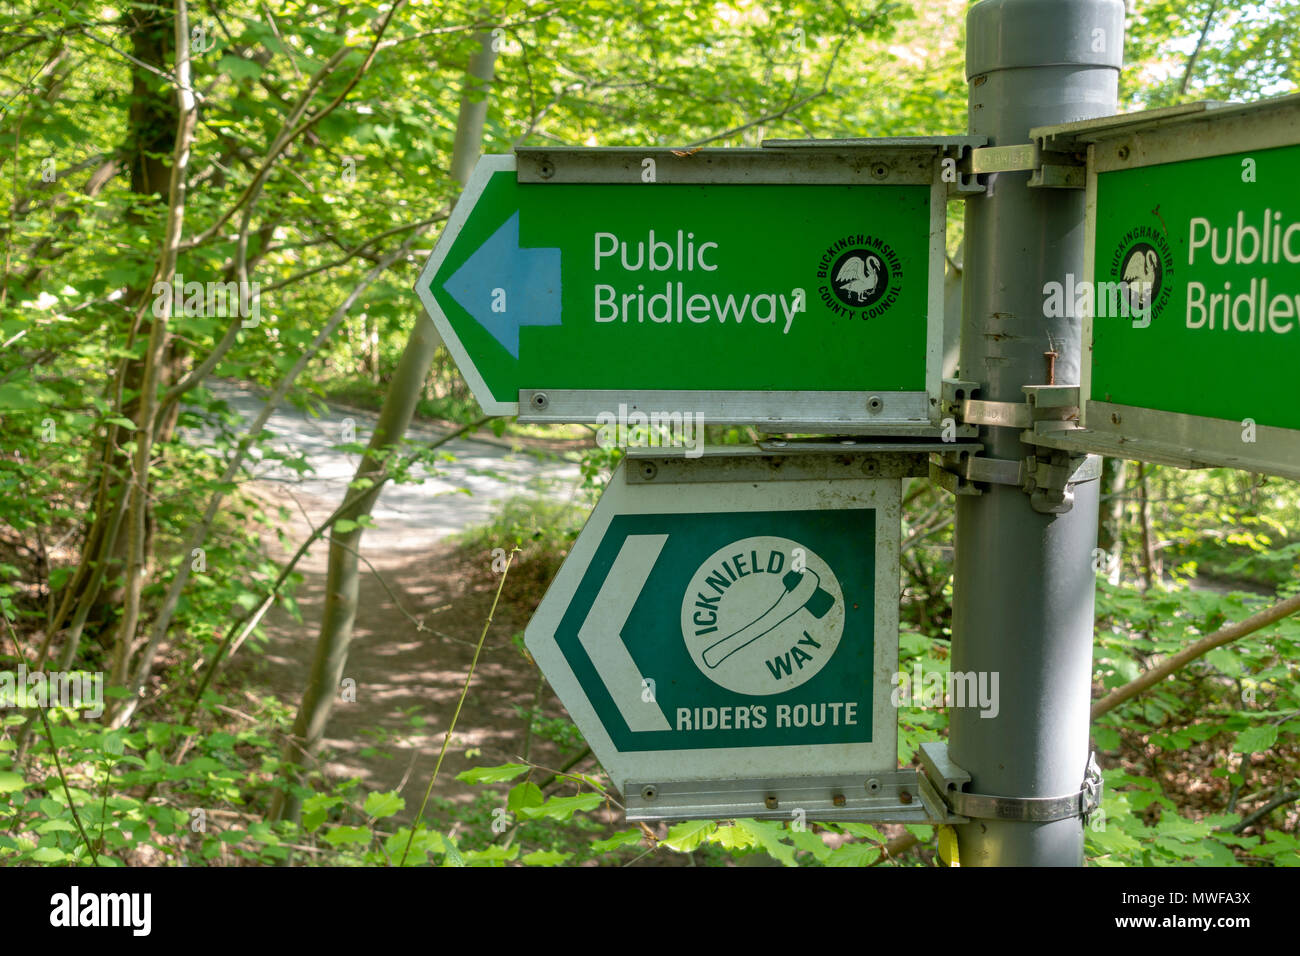 A public bridleway sign and one for a Riders Route on the Icknield Way in the Chilterns area of natural beauty, UK - Stock Image